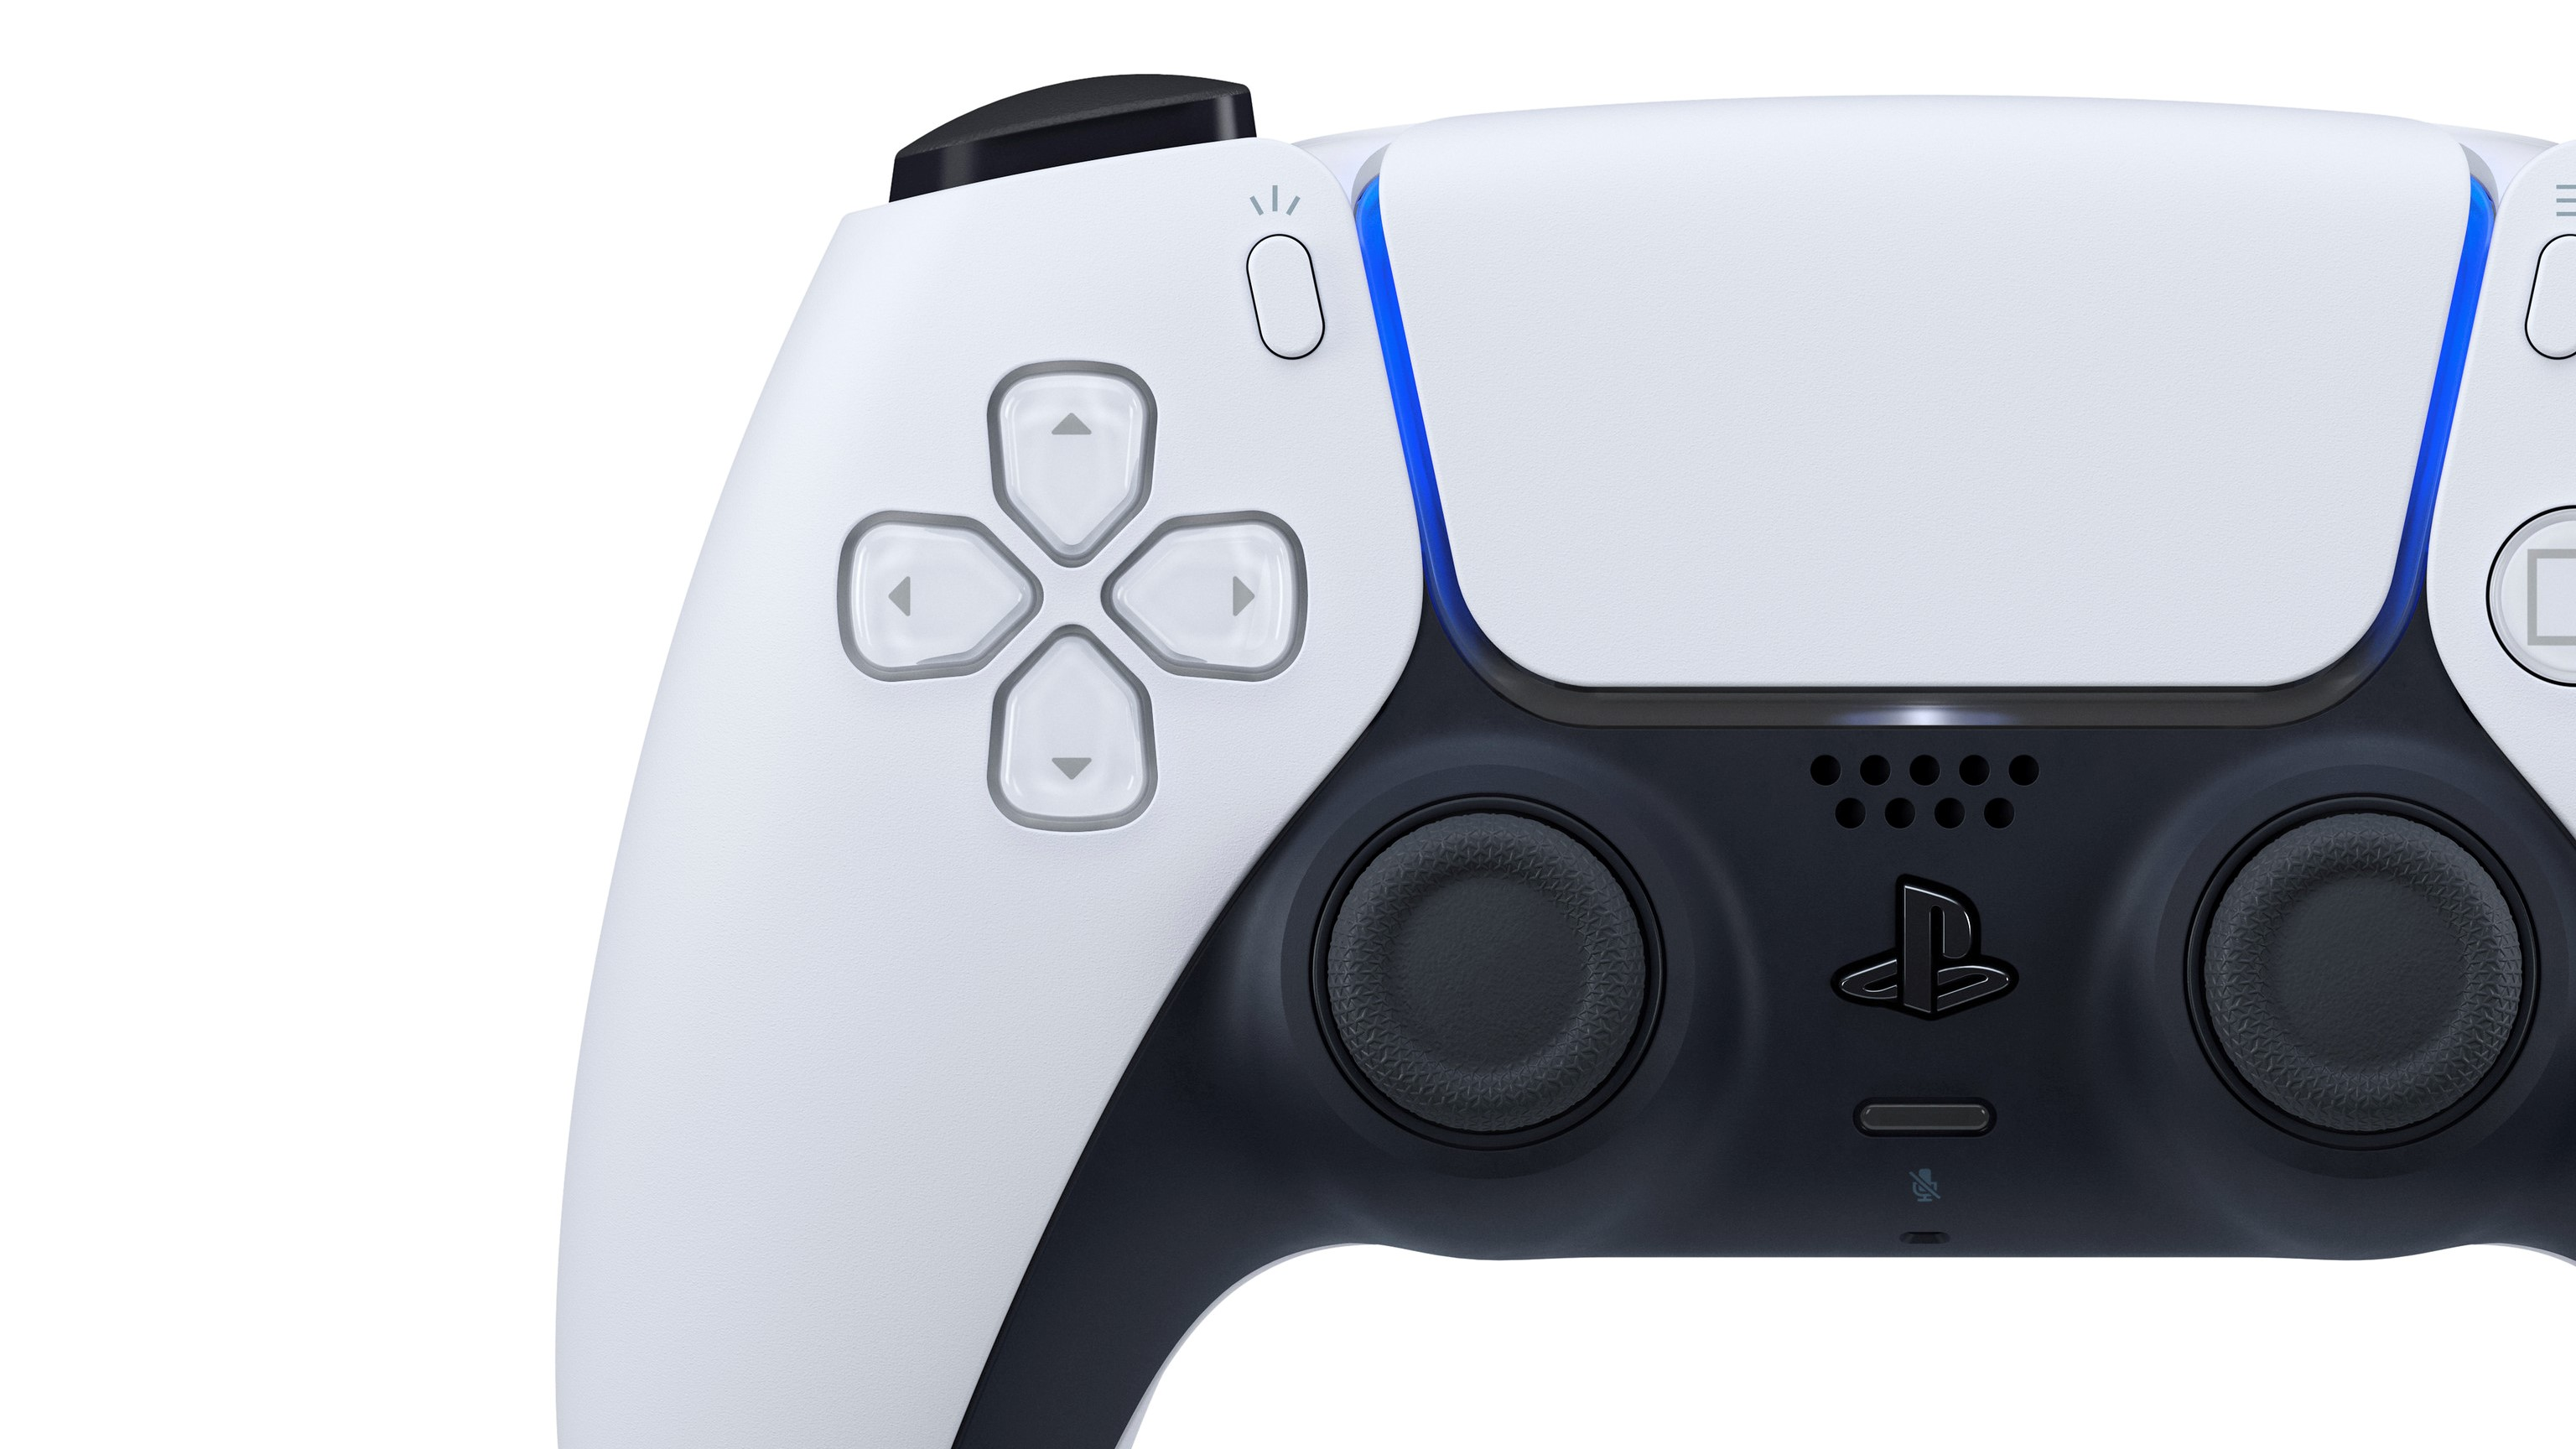 Meet the PS5 DualSense controller | TechRadar